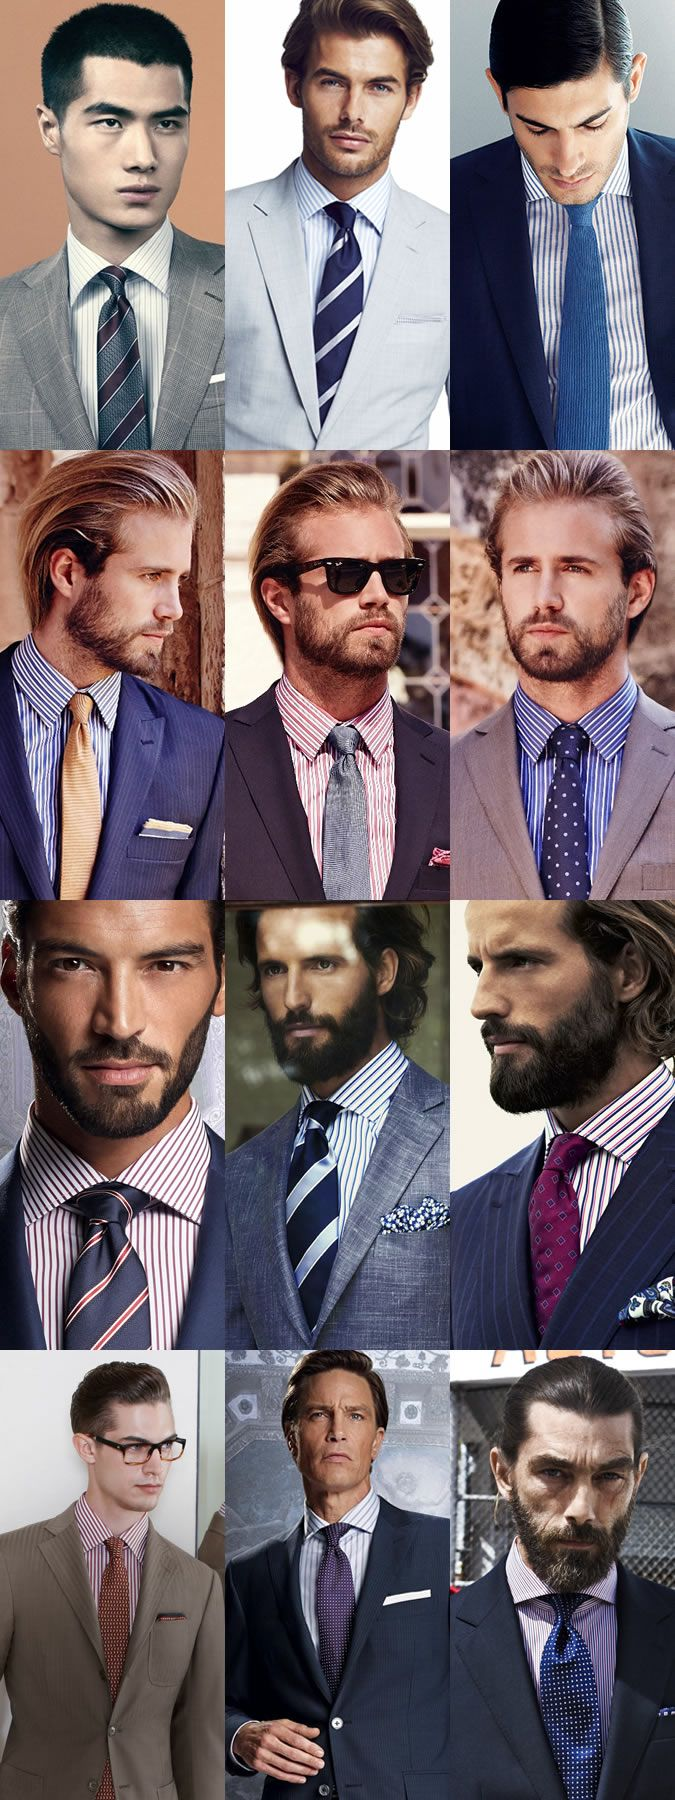 Men's Striped Shirts and Tie Combinations Lookbook from fashionbeans.com